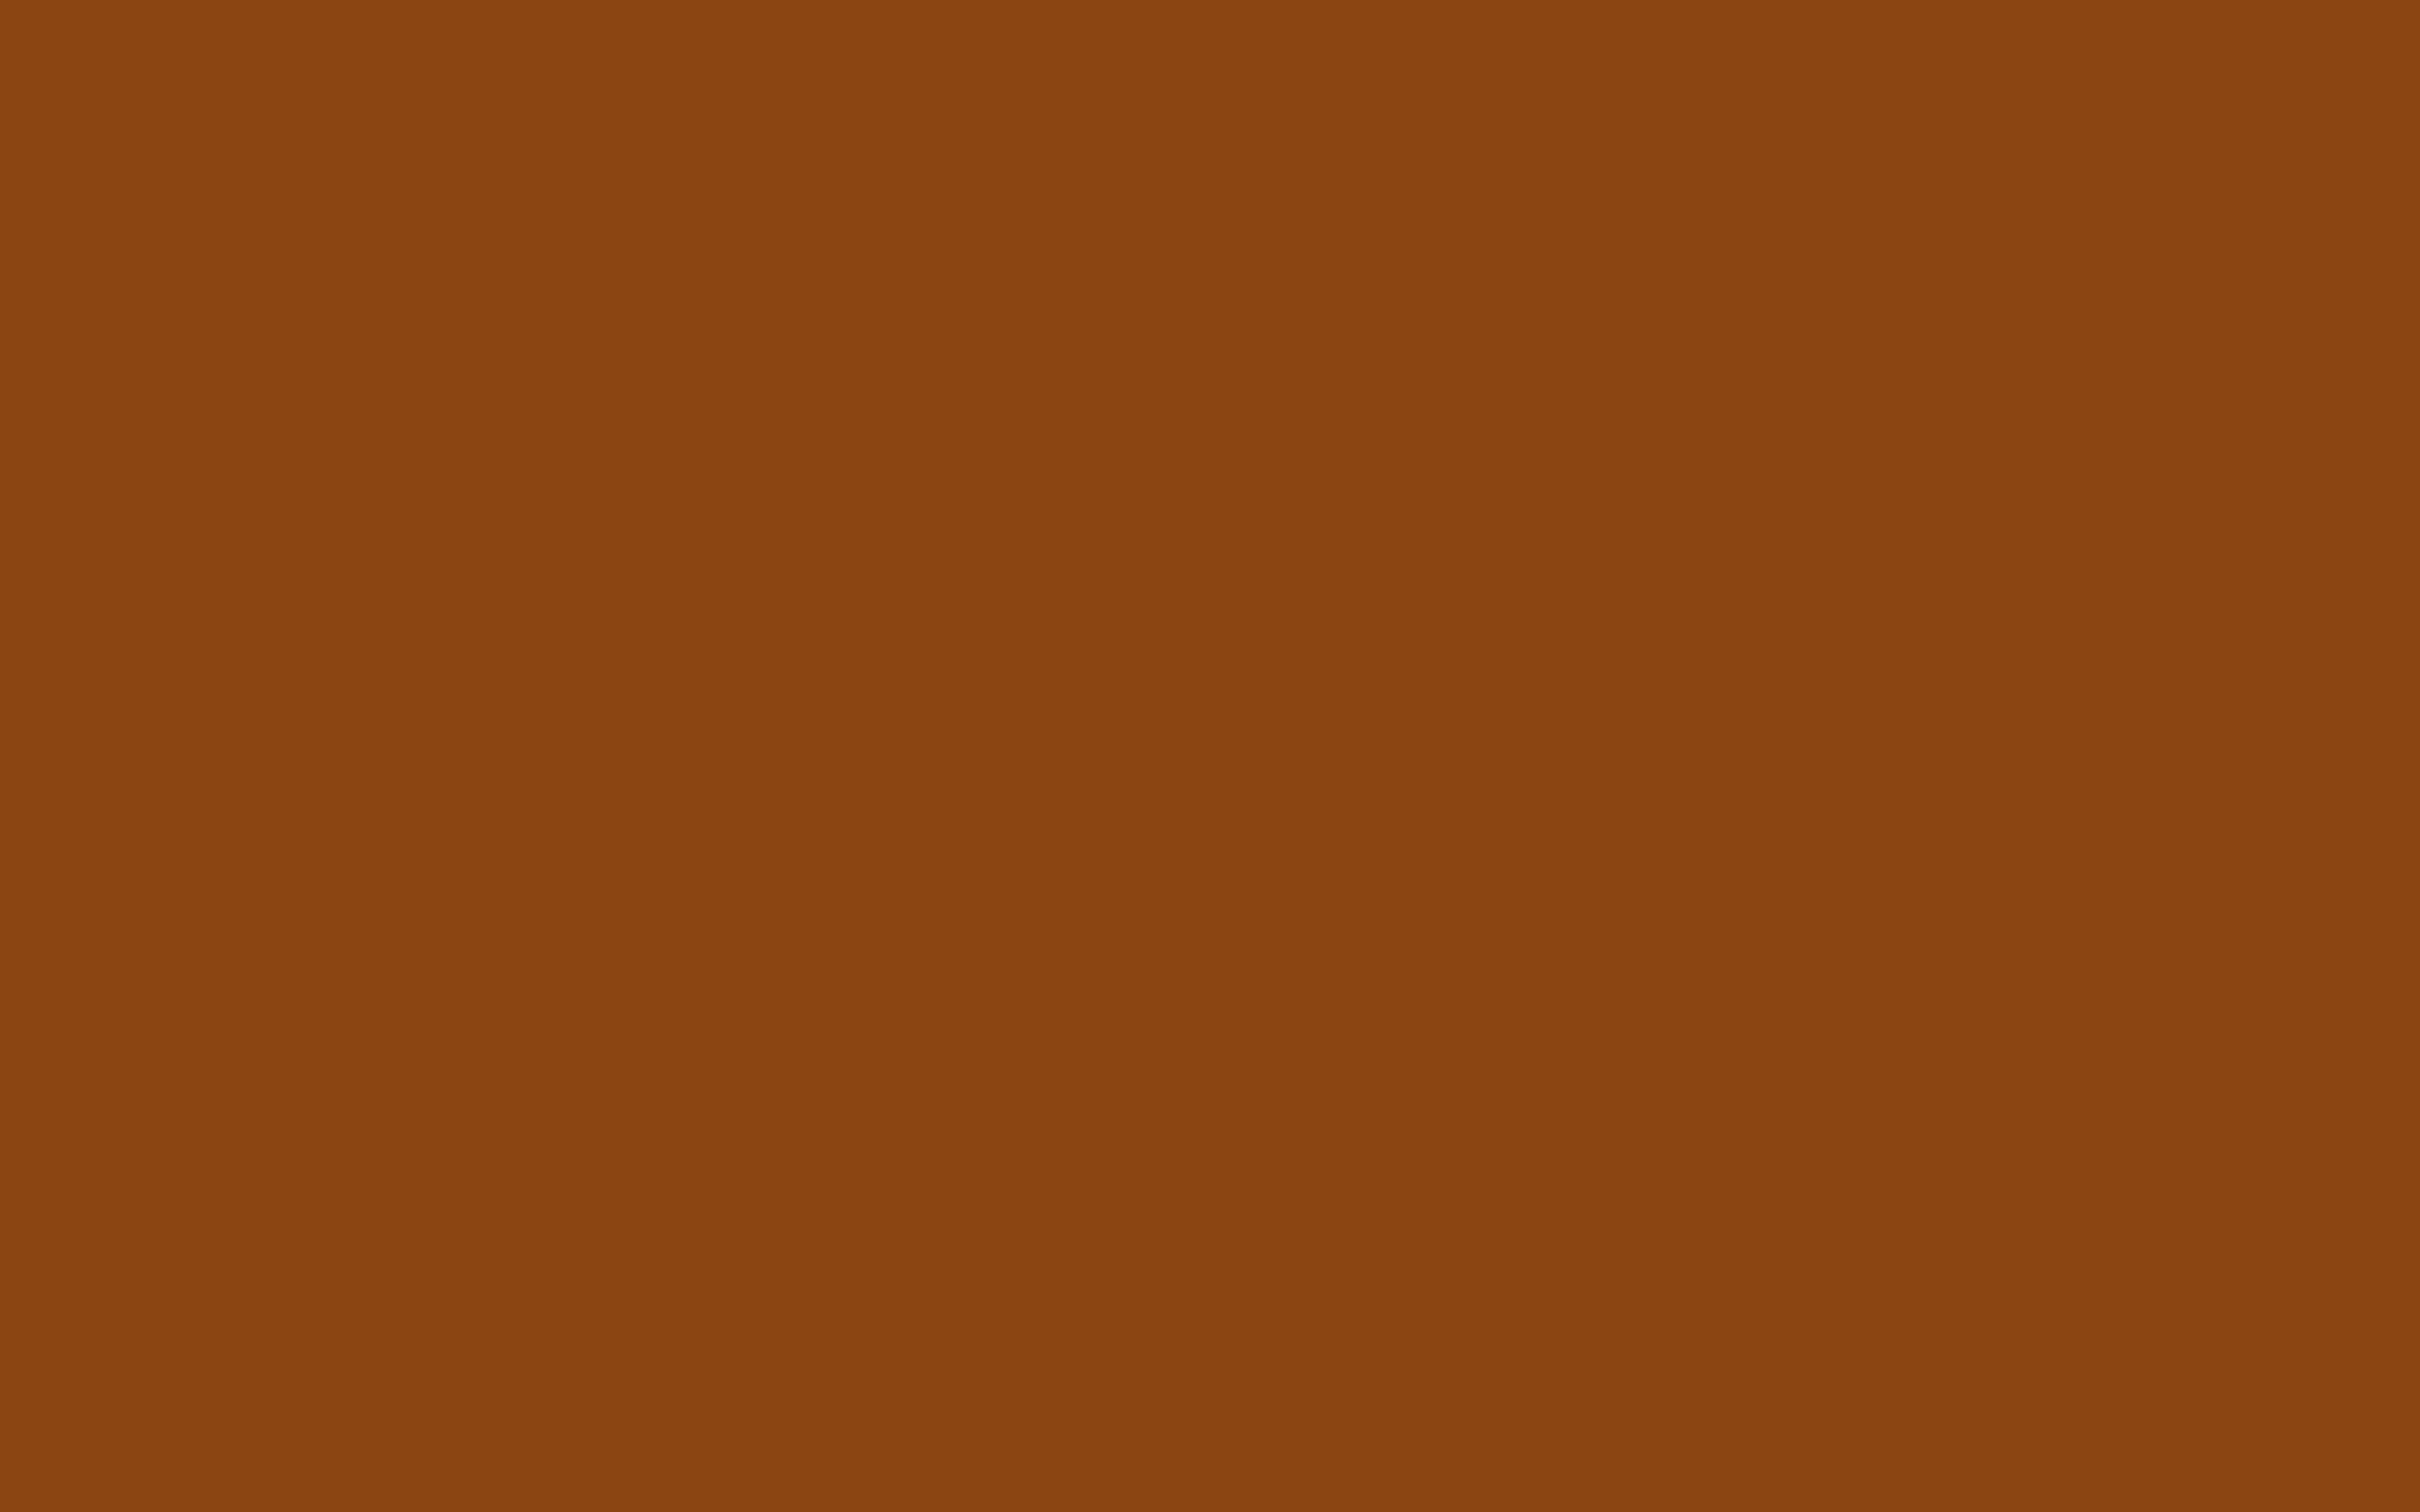 2560x1600 Saddle Brown Solid Color Background